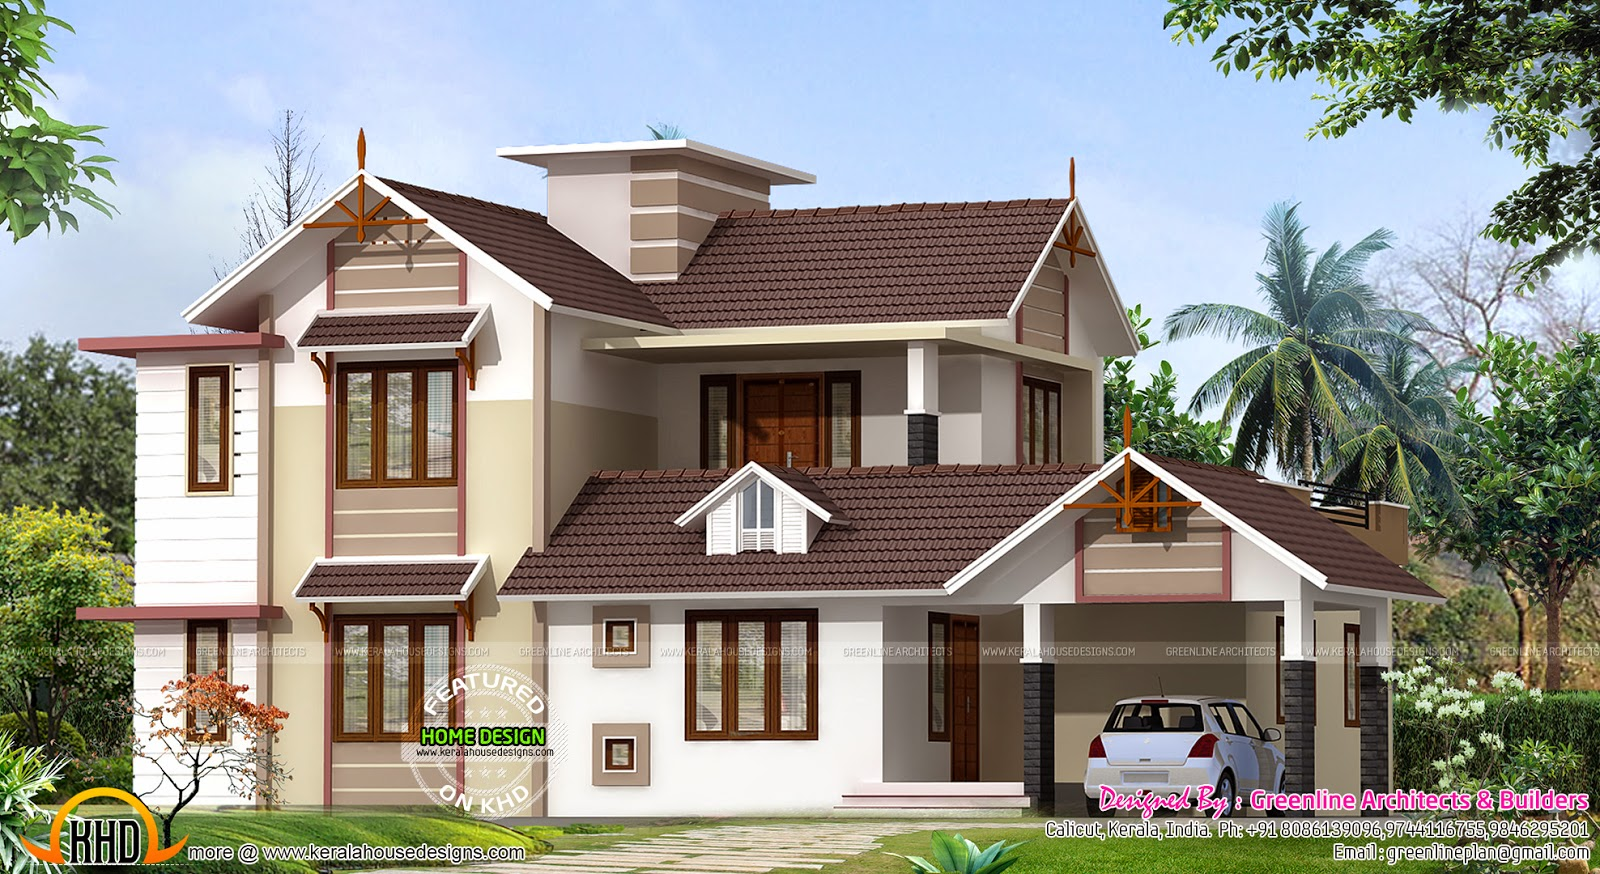 2400 sq ft new house design kerala home design and floor New house blueprints